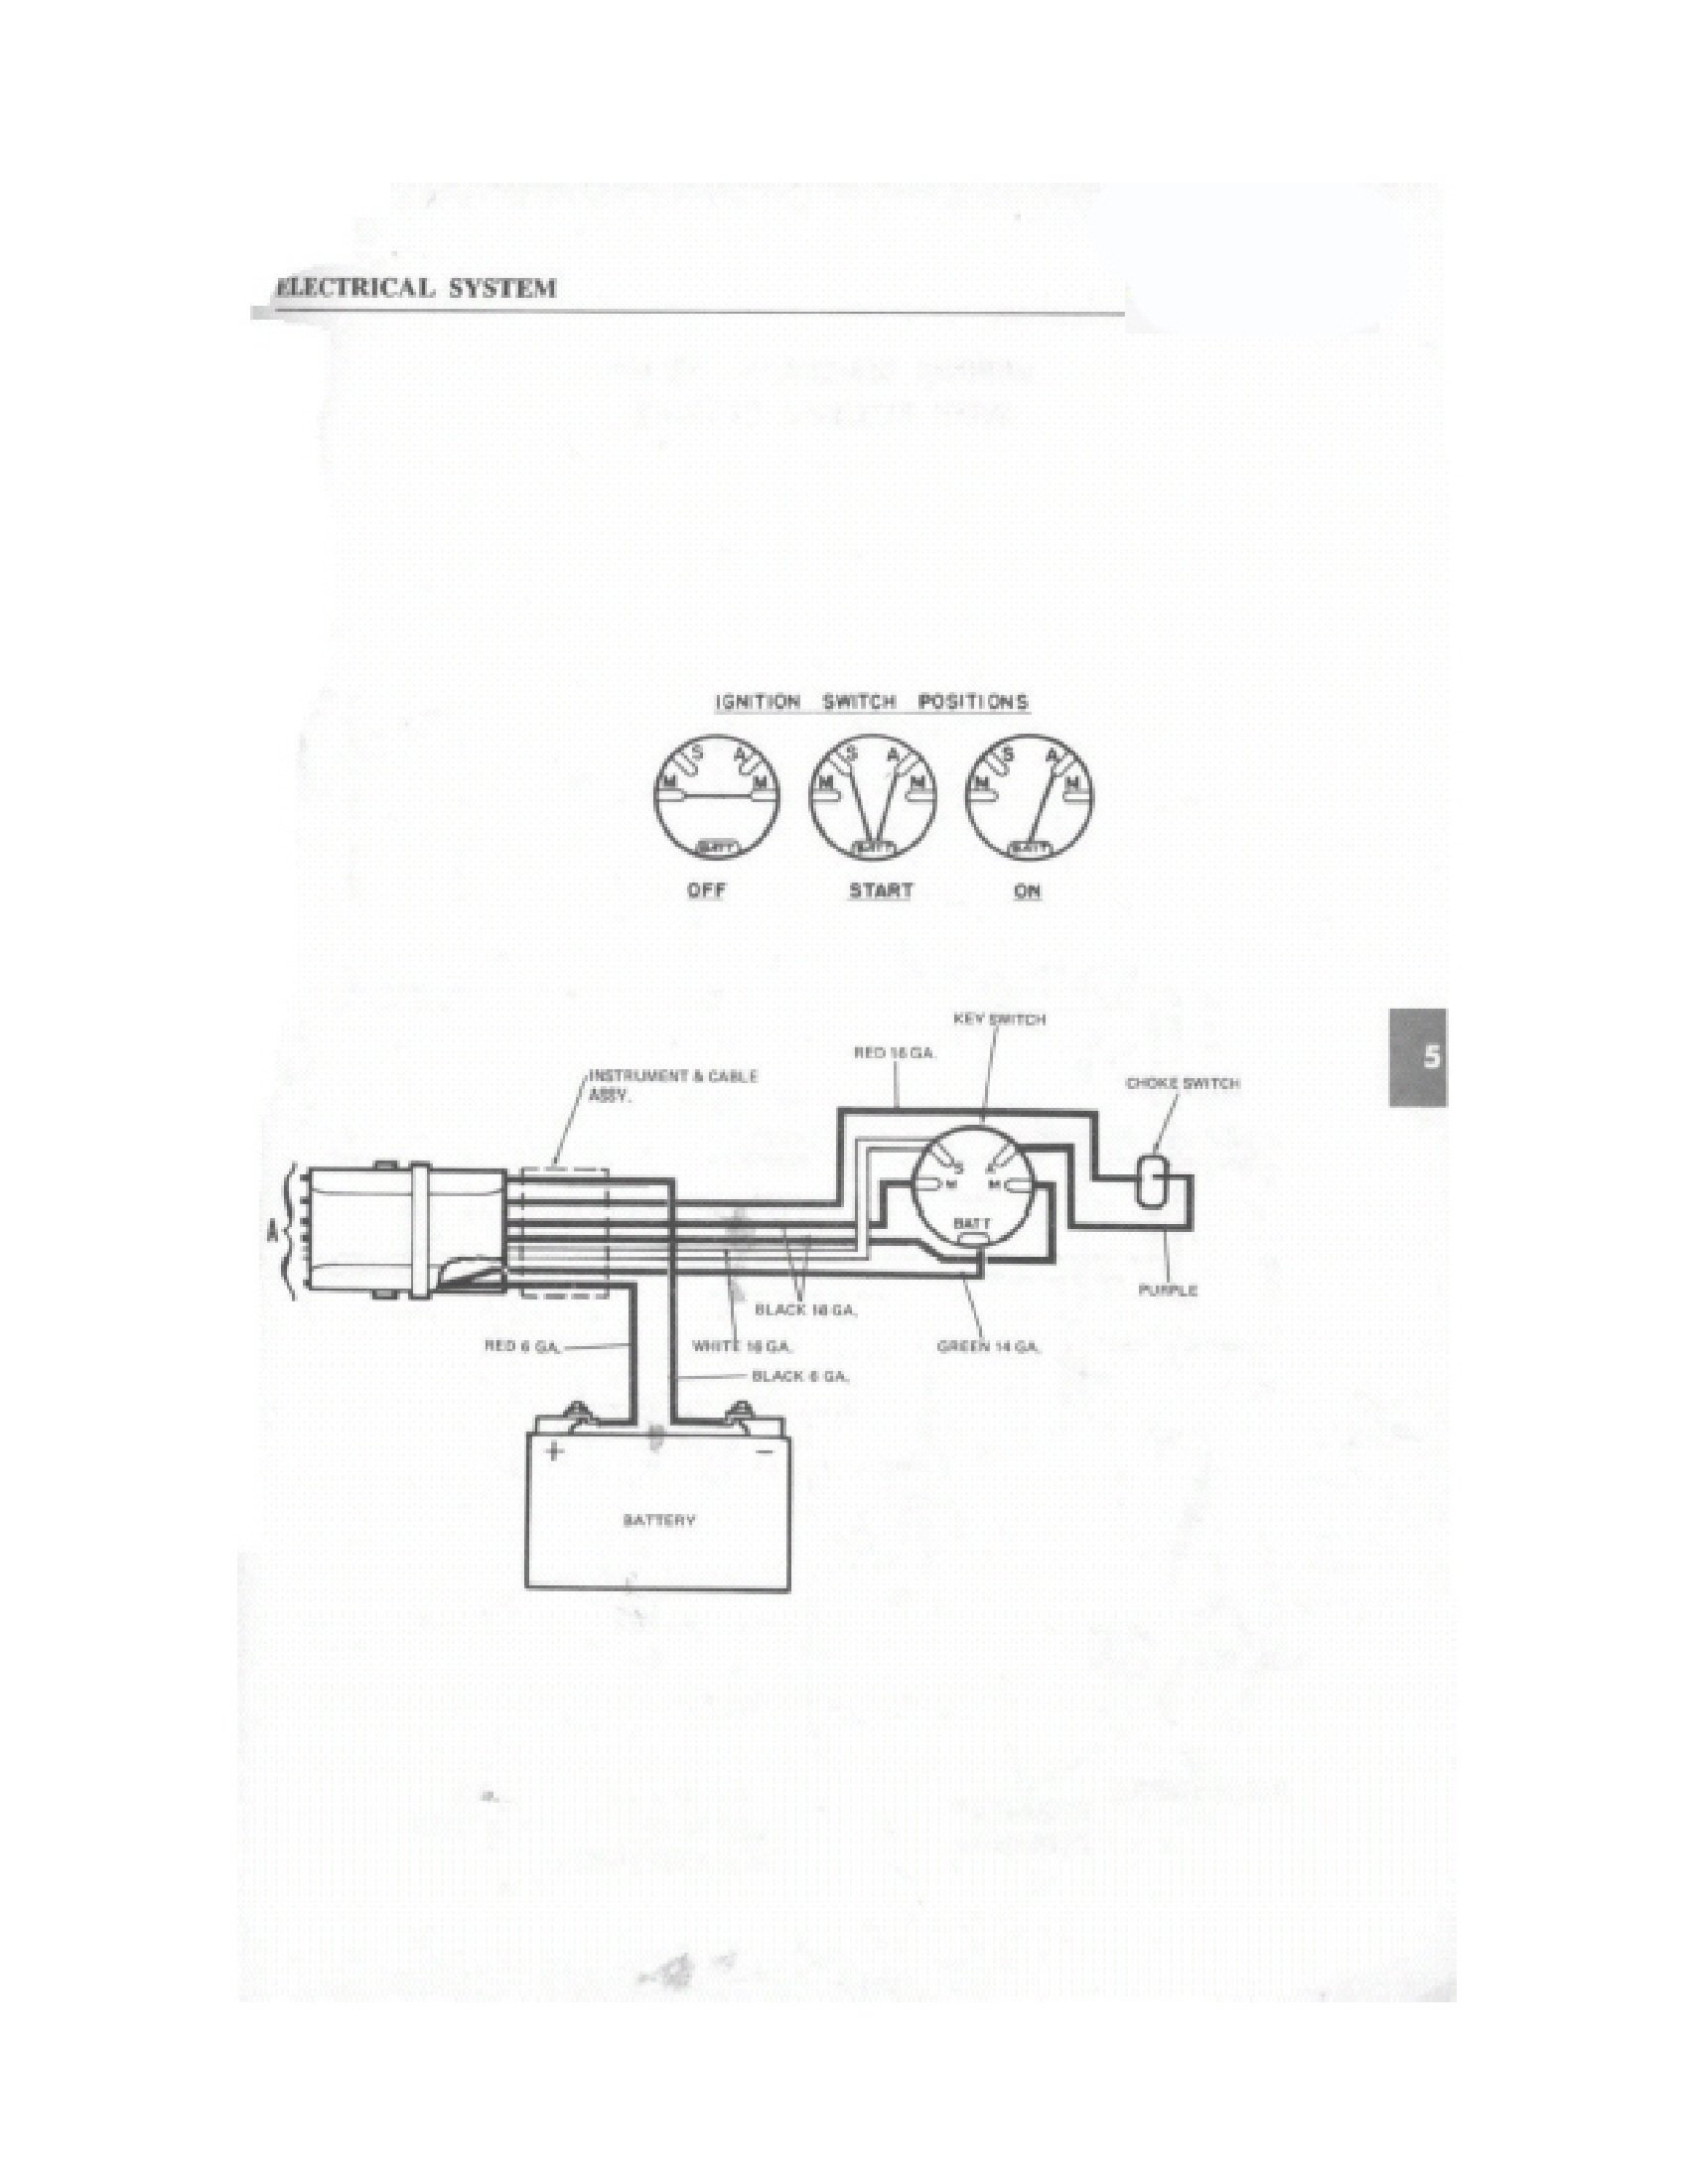 1977 Johnson 35 Hp Ignition Wiring Diagram Schematic 2019 Evinrude Seahorse Motor 48